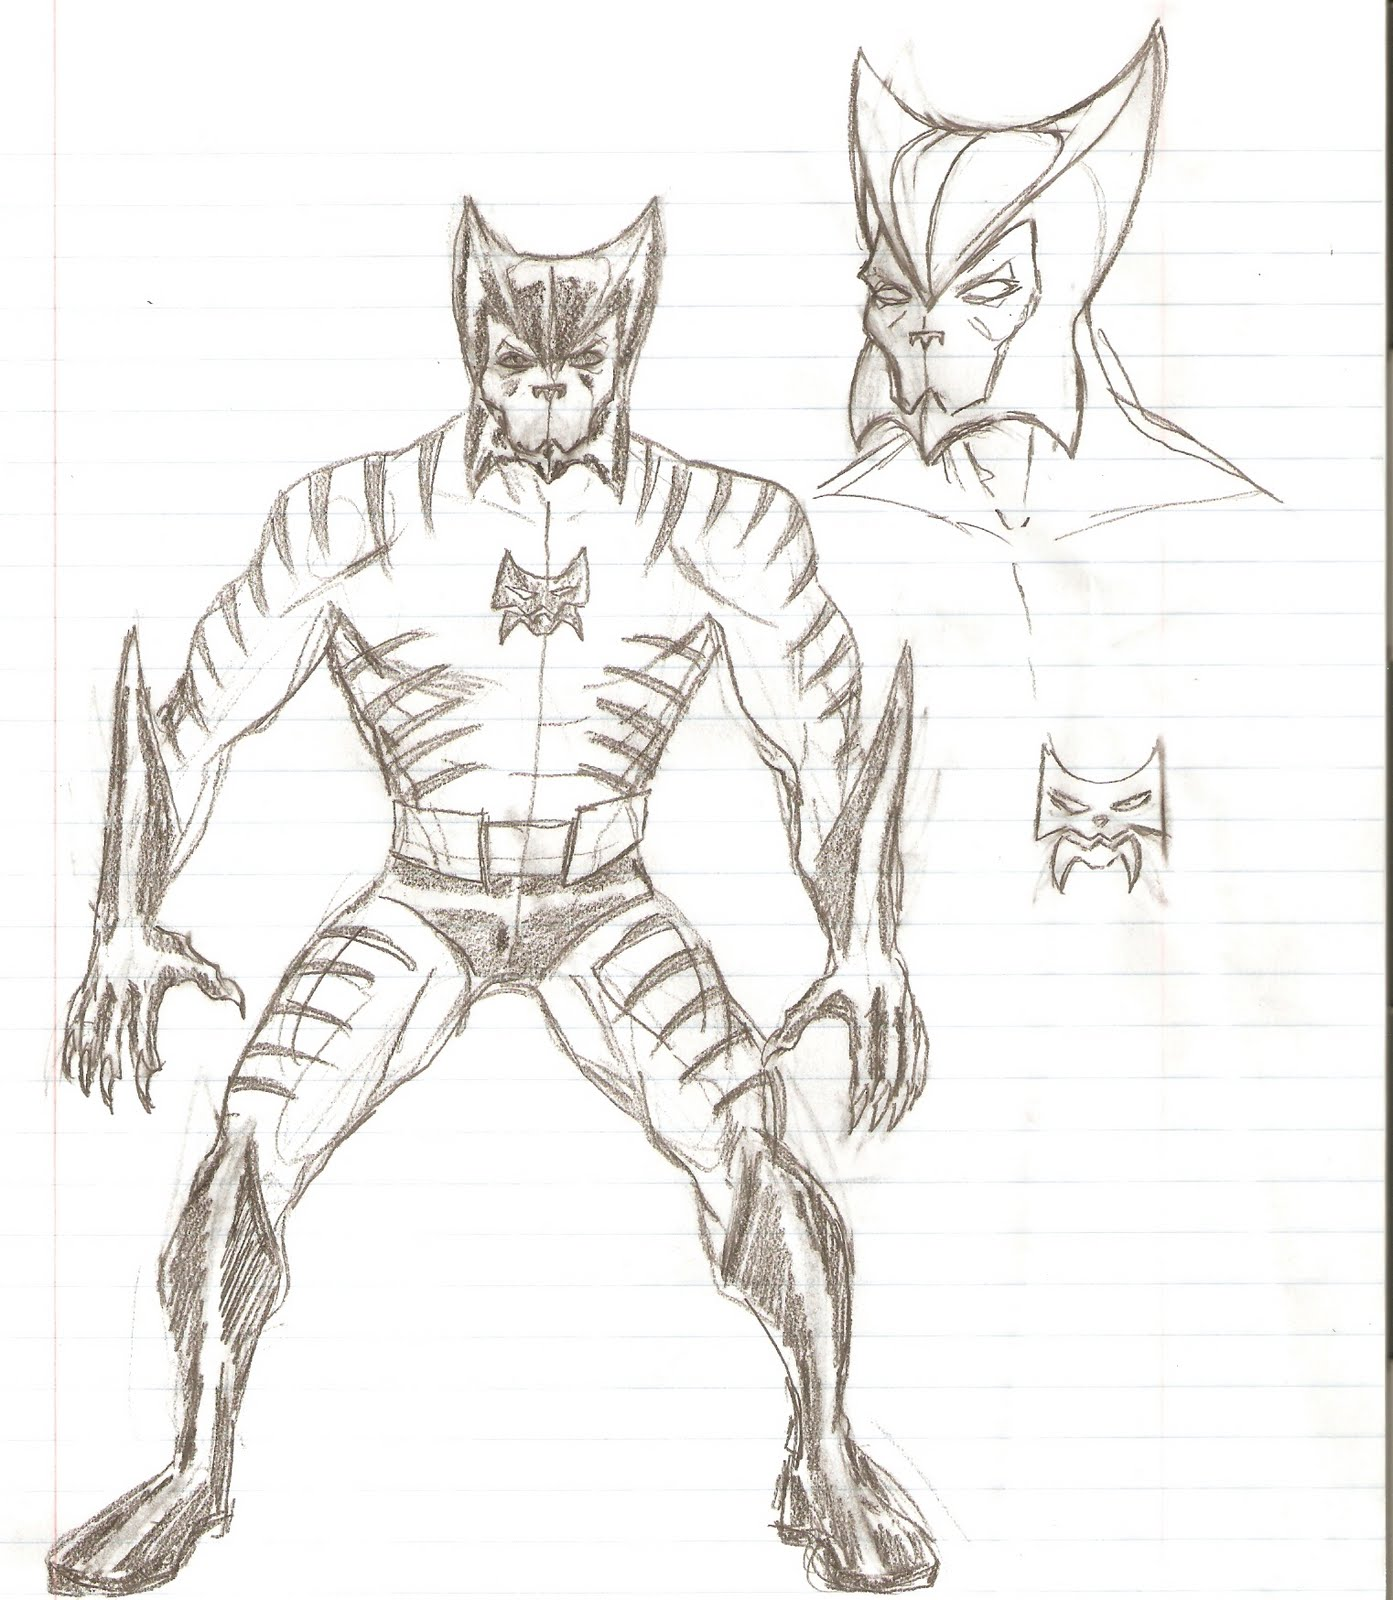 Superhero Drawings http://customartstuff.blogspot.com/2010/05/old-superhero-drawings-from-2003.html